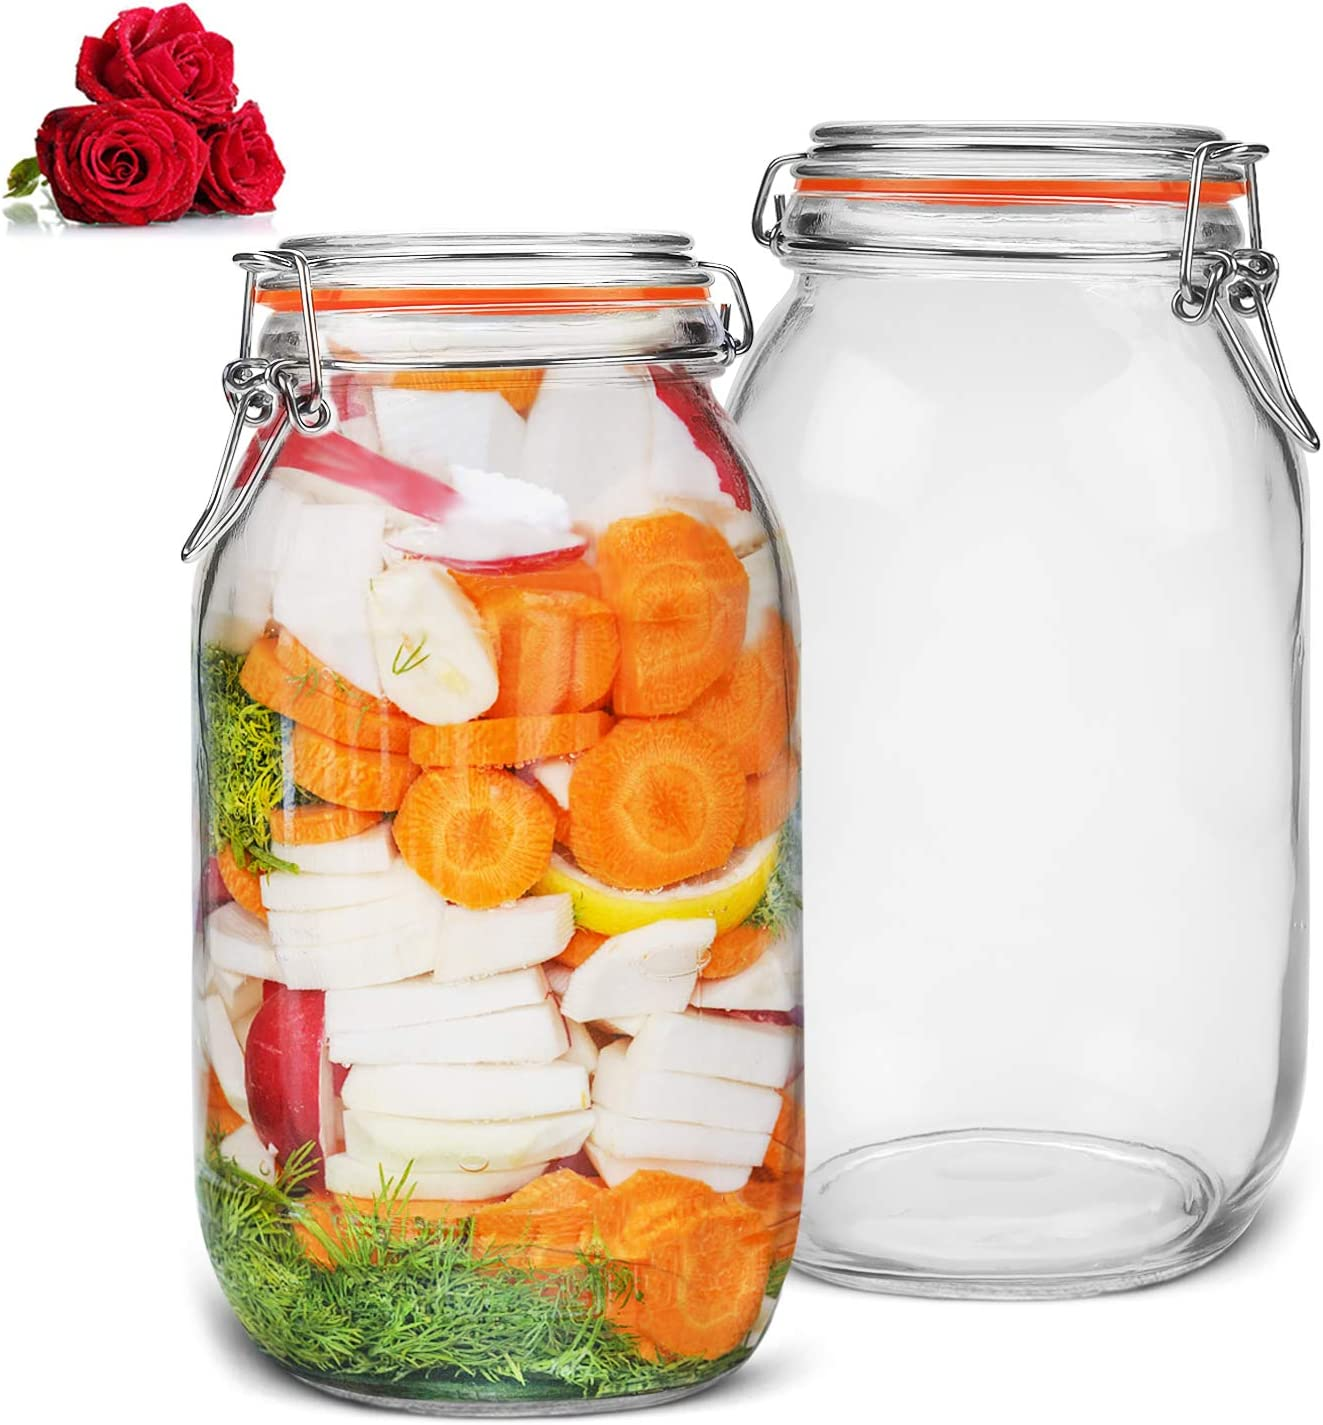 LovoIn 67oz Airtight Glass Canister - 2 Pack 2 Quart Food Storage Jars with Sealed Airtight Lids for Fermenting, Preserving and Storage - Cereal, Preserves, Spice, Beans